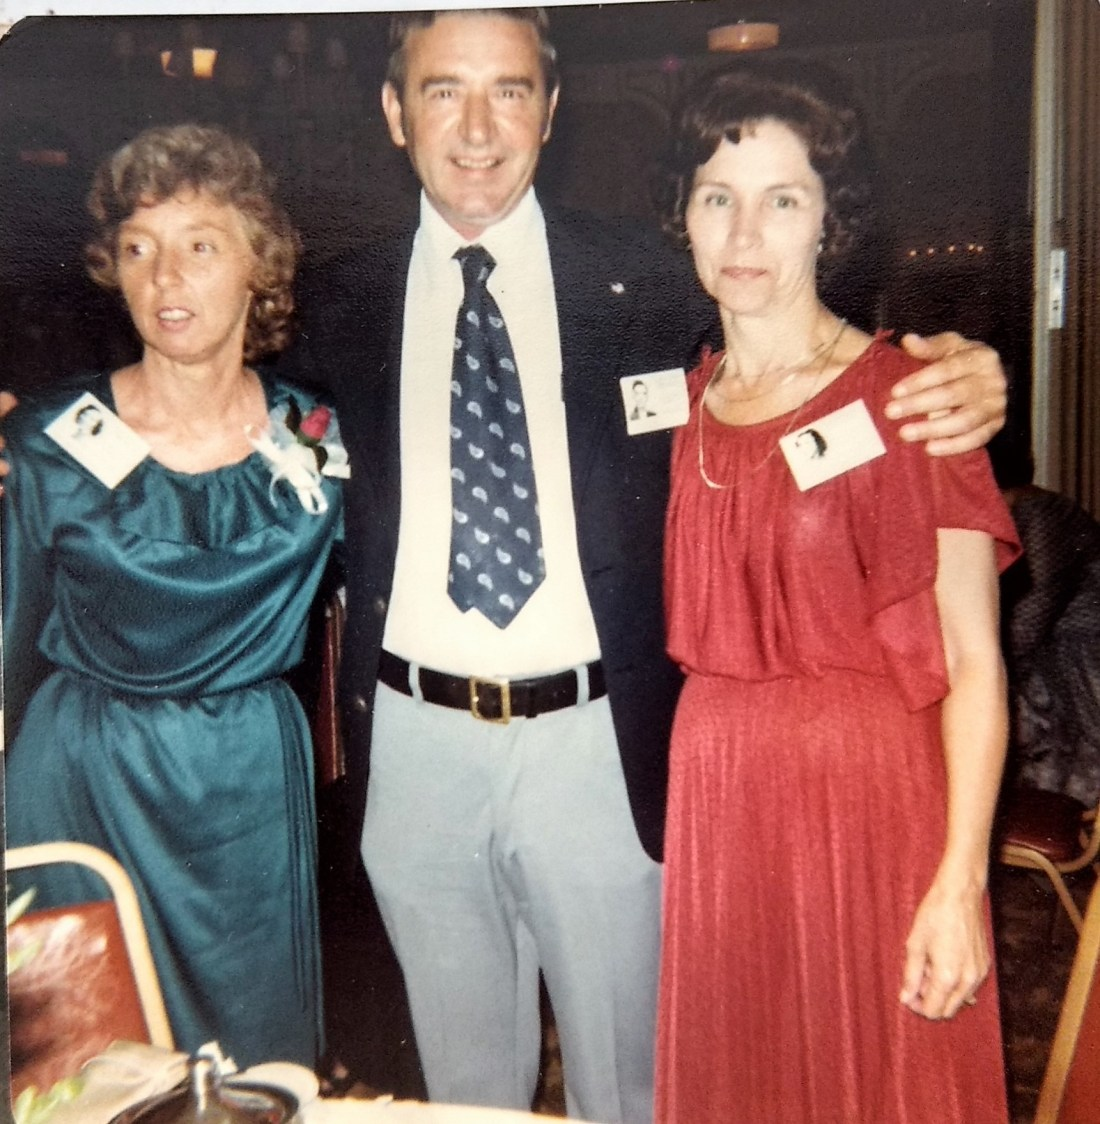 Helen, Billy Garman and Kathleen Taylor at High School Reunion